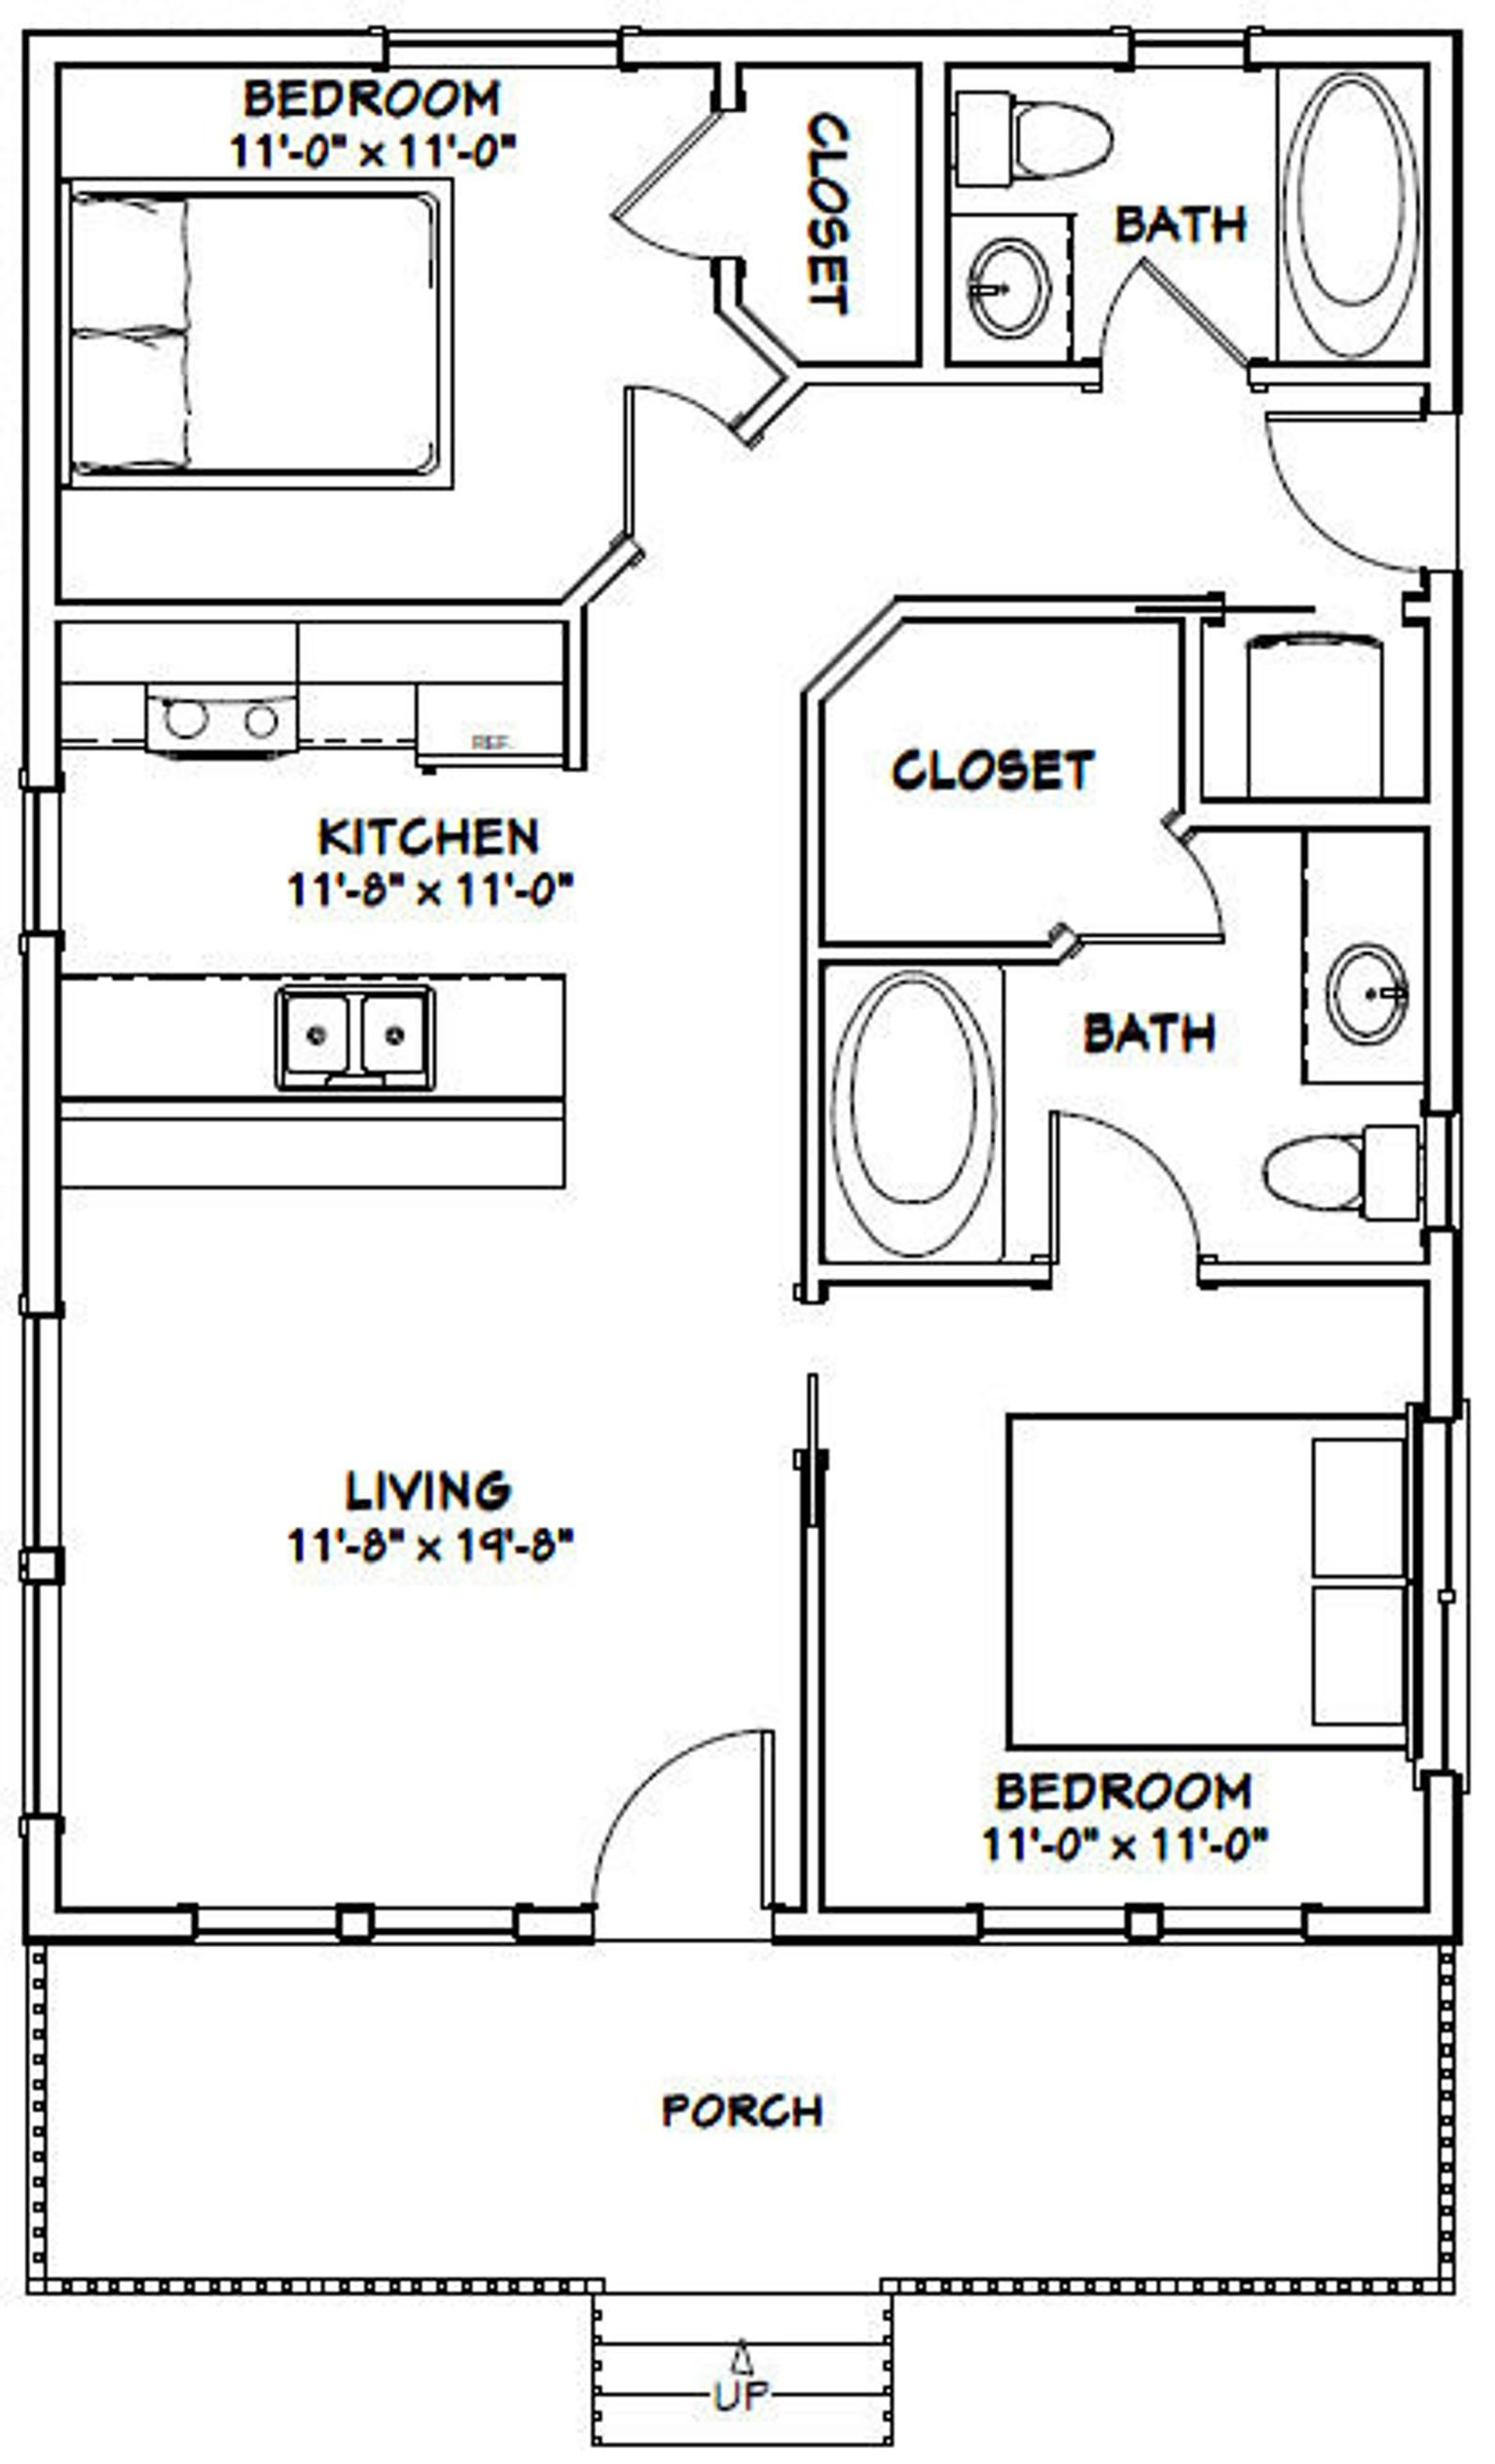 24x32 House 2 Bedroom 2 Bath 768 Sq Ft Pdf Floor Plan Instant Download Model 3 Tiny House Floor Plans Small House Plans Tiny House Plans